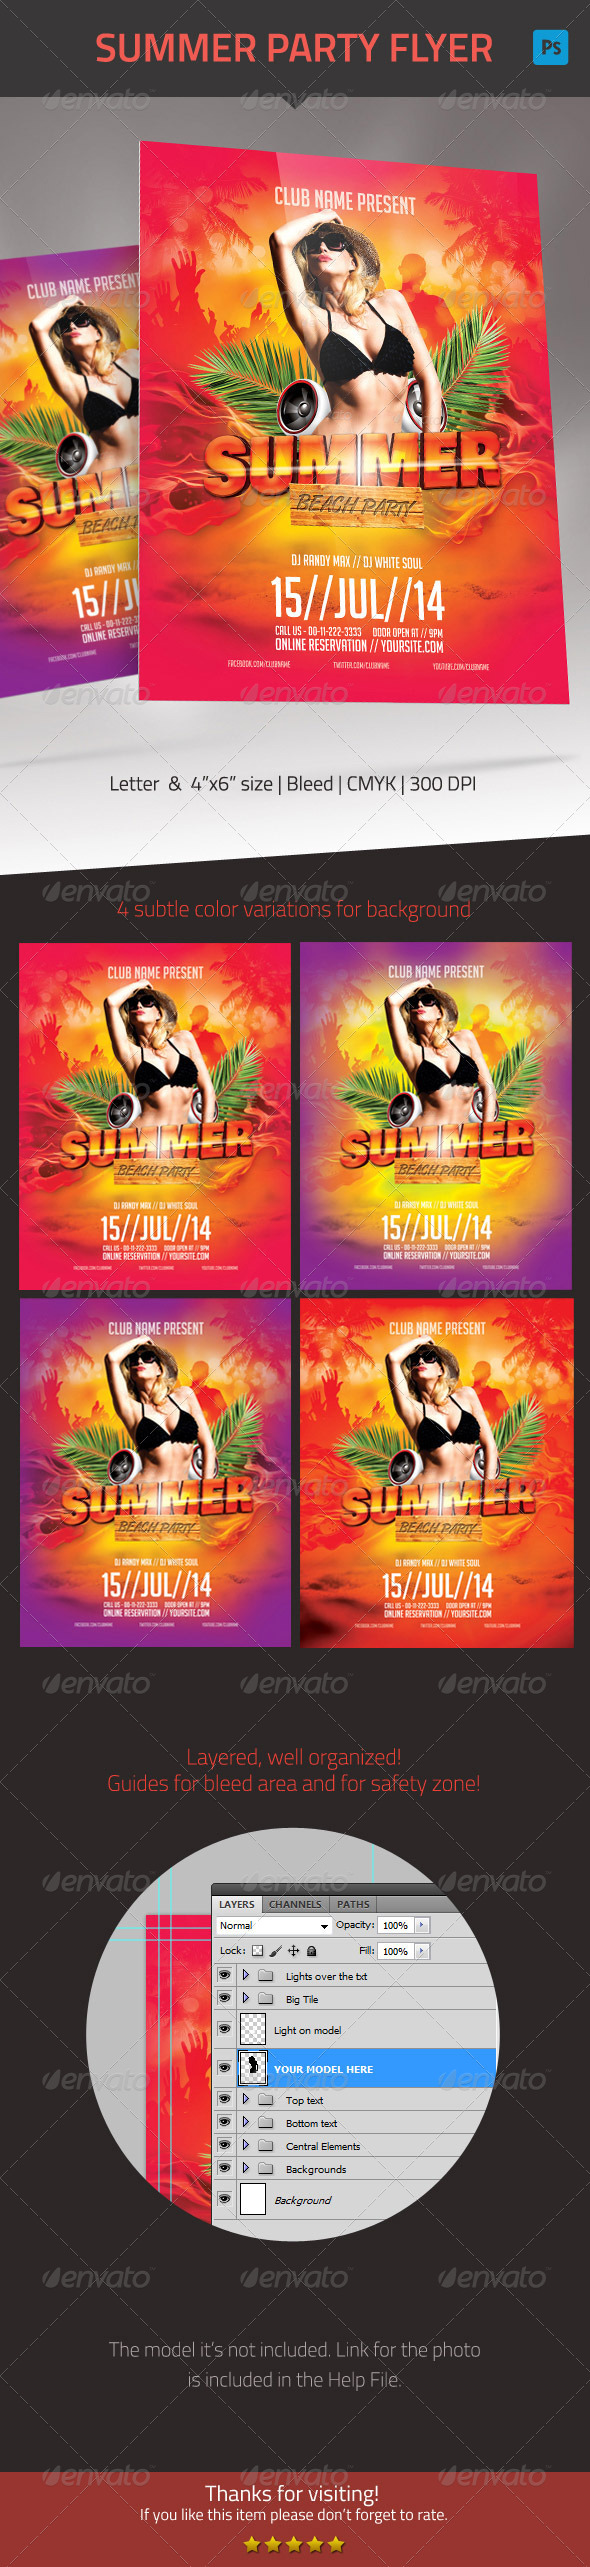 GraphicRiver Summer Party Flyer 7885375